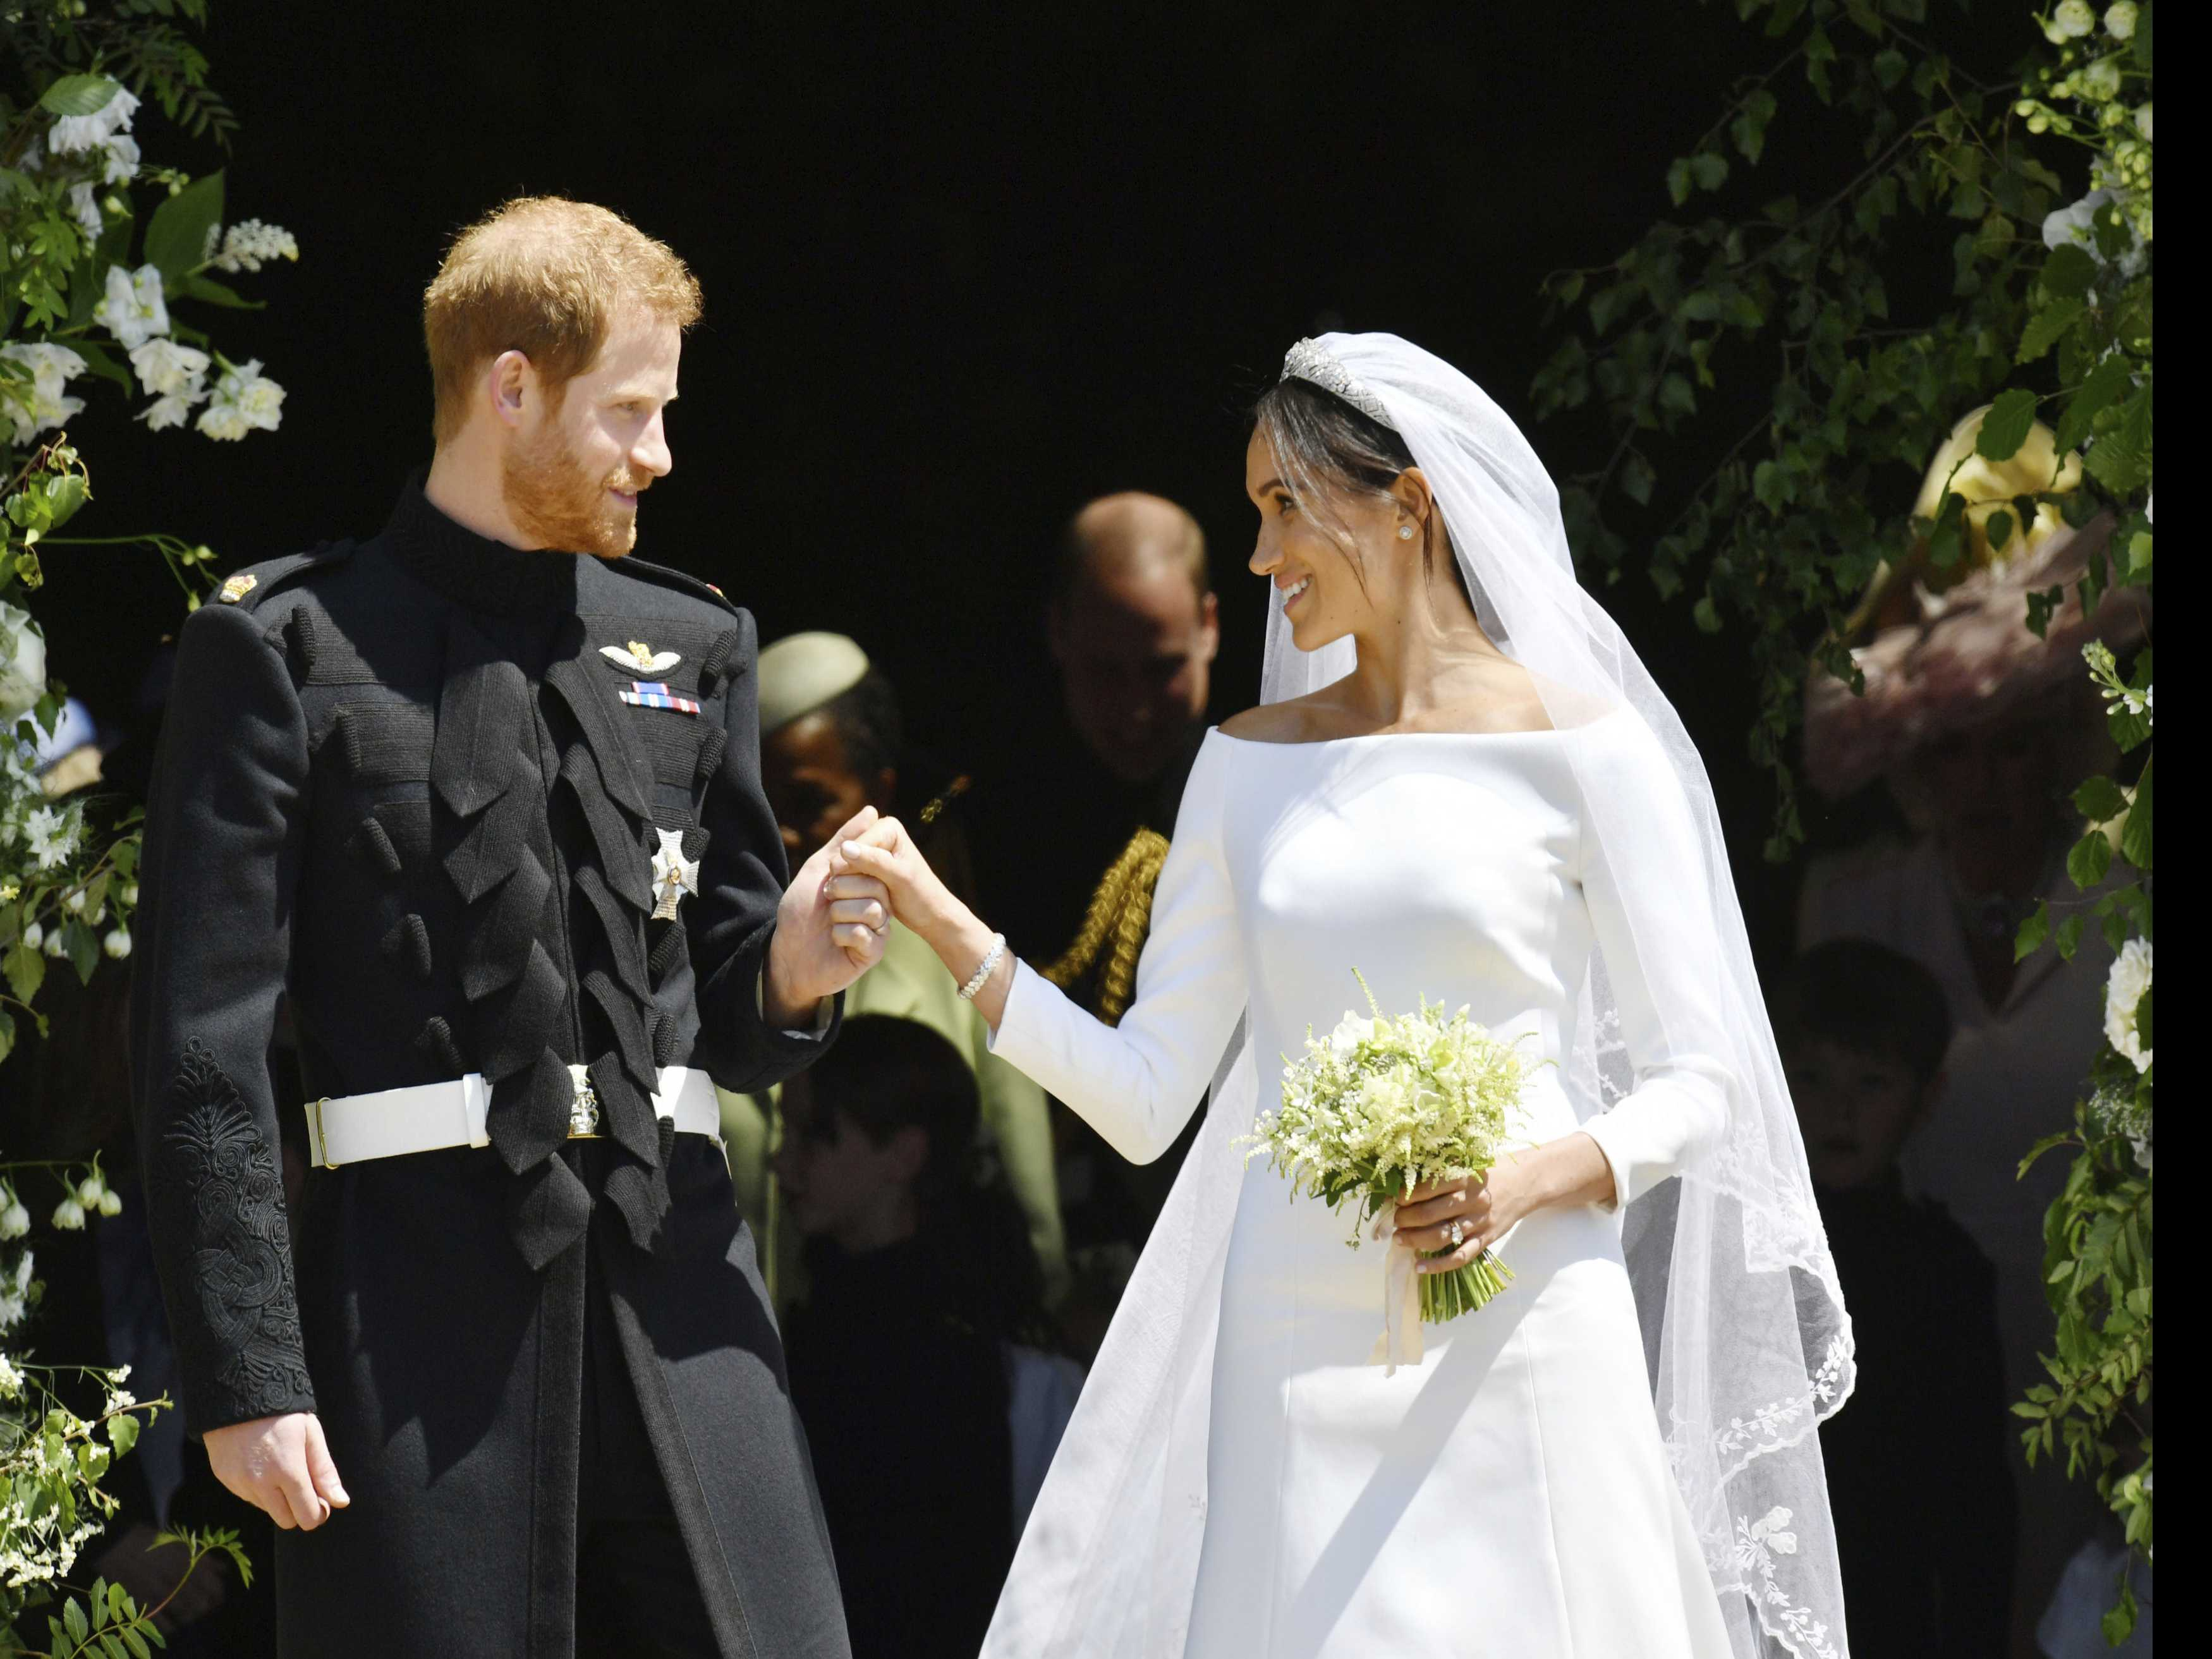 Harry and Meghan's Wedding Outfits to Go on Public Display